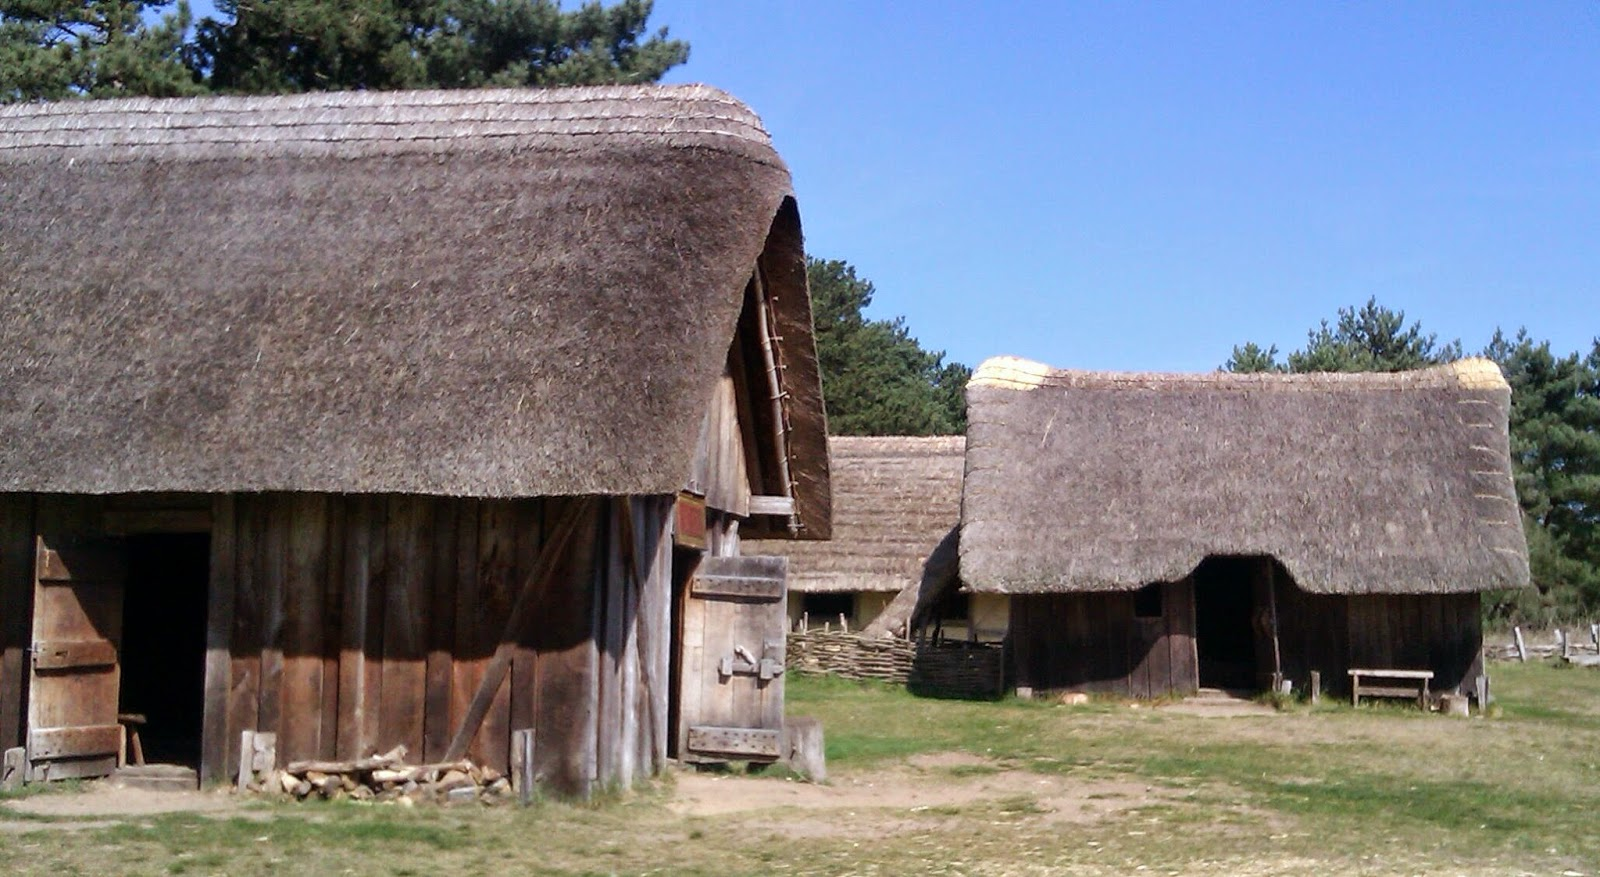 http://www.zazzle.co.uk/west_stow_anglo_saxon_village_suffolk_uk_card-137449531167651308?rf=238977740256437049